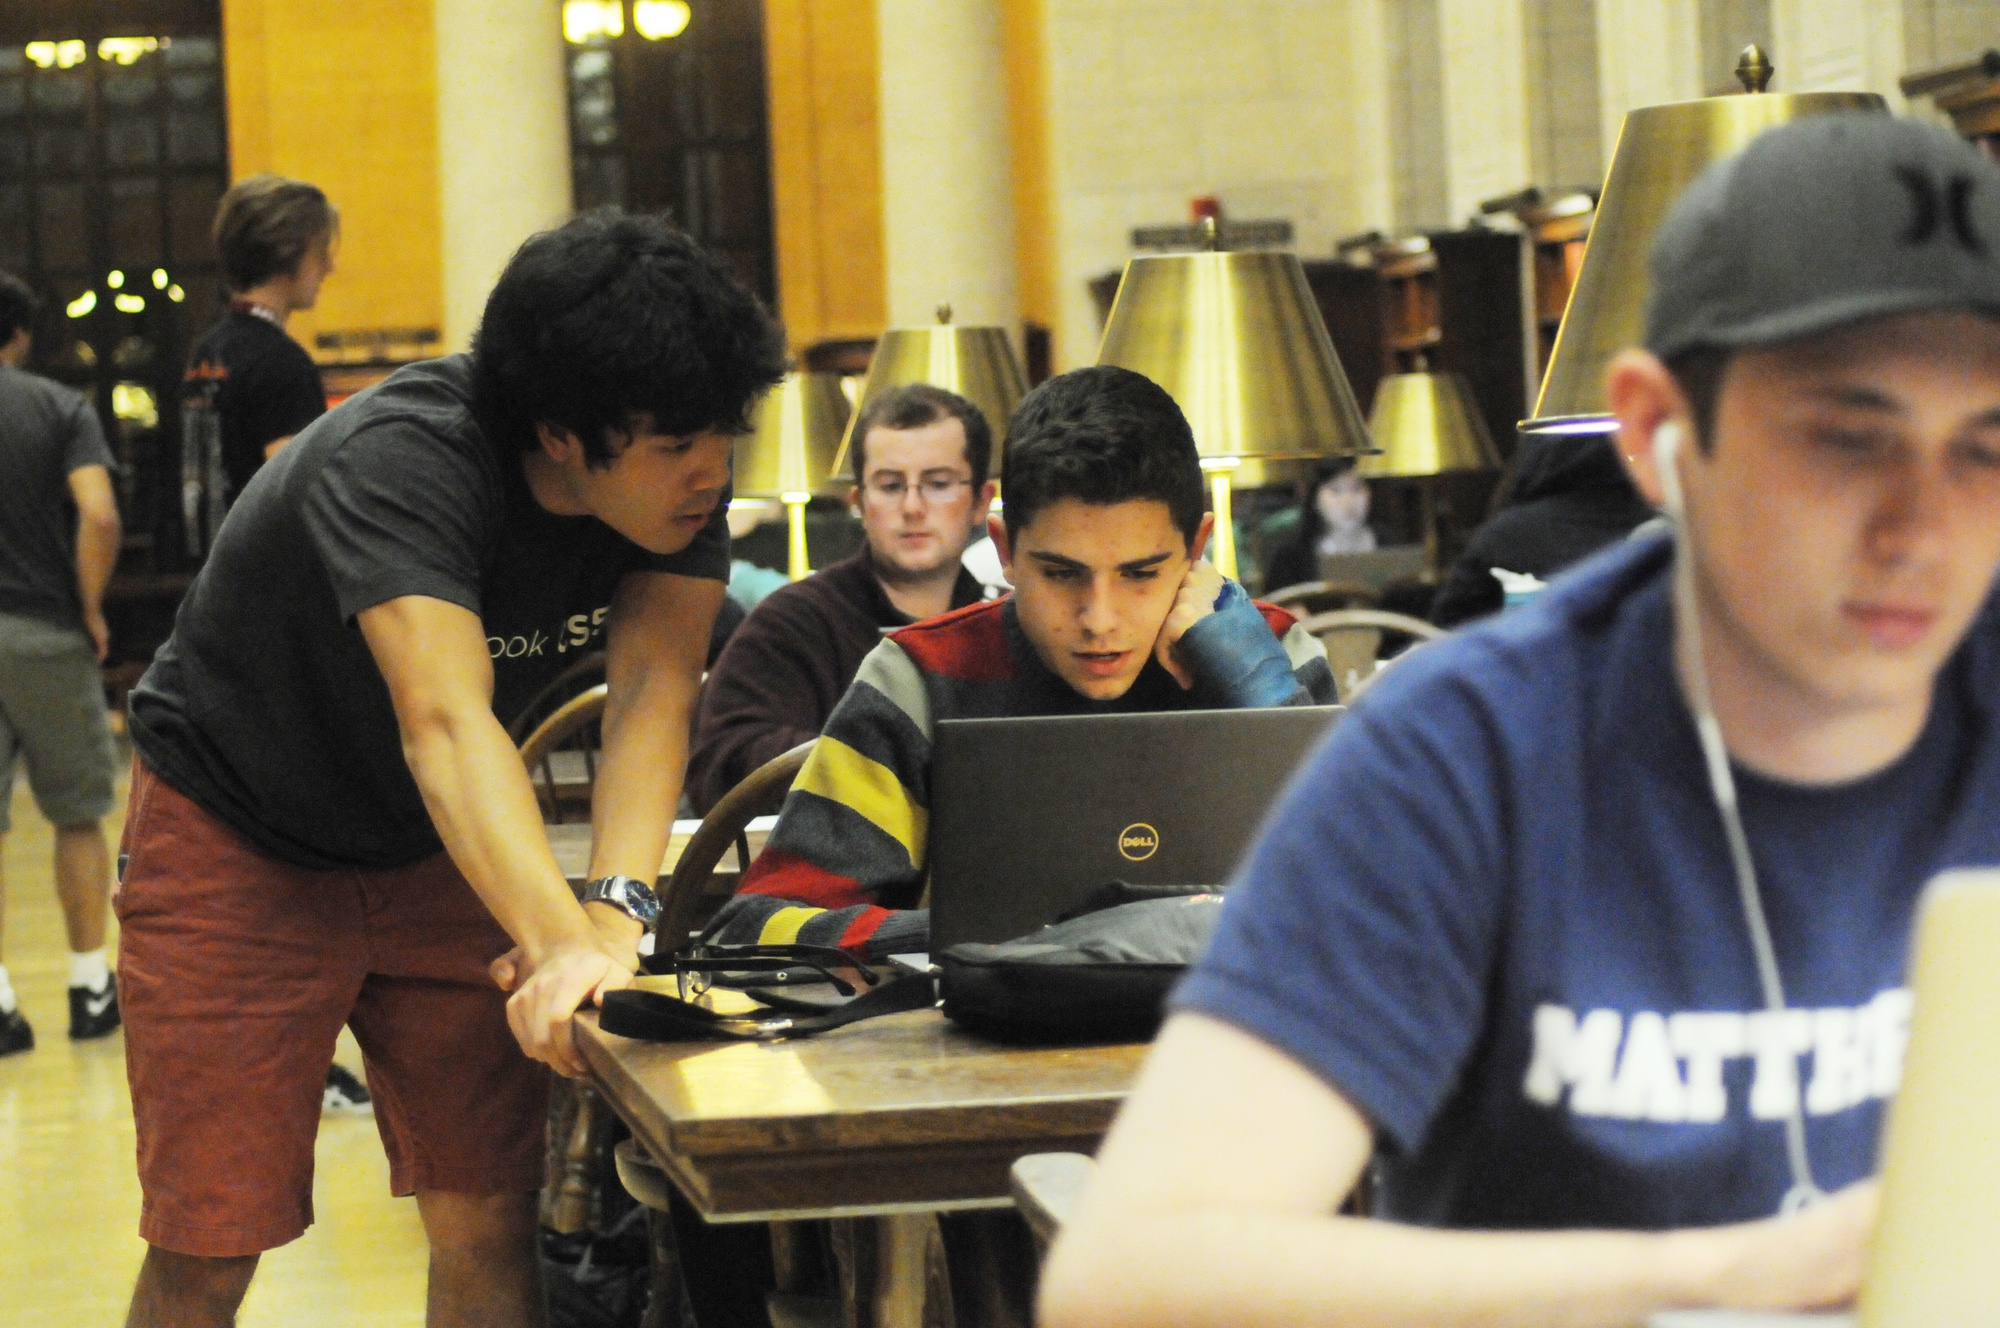 Jordan H. Hayashi, left, a teaching fellow for CS50, assists a student during CS50 office hours in Widener Library on Monday evening.